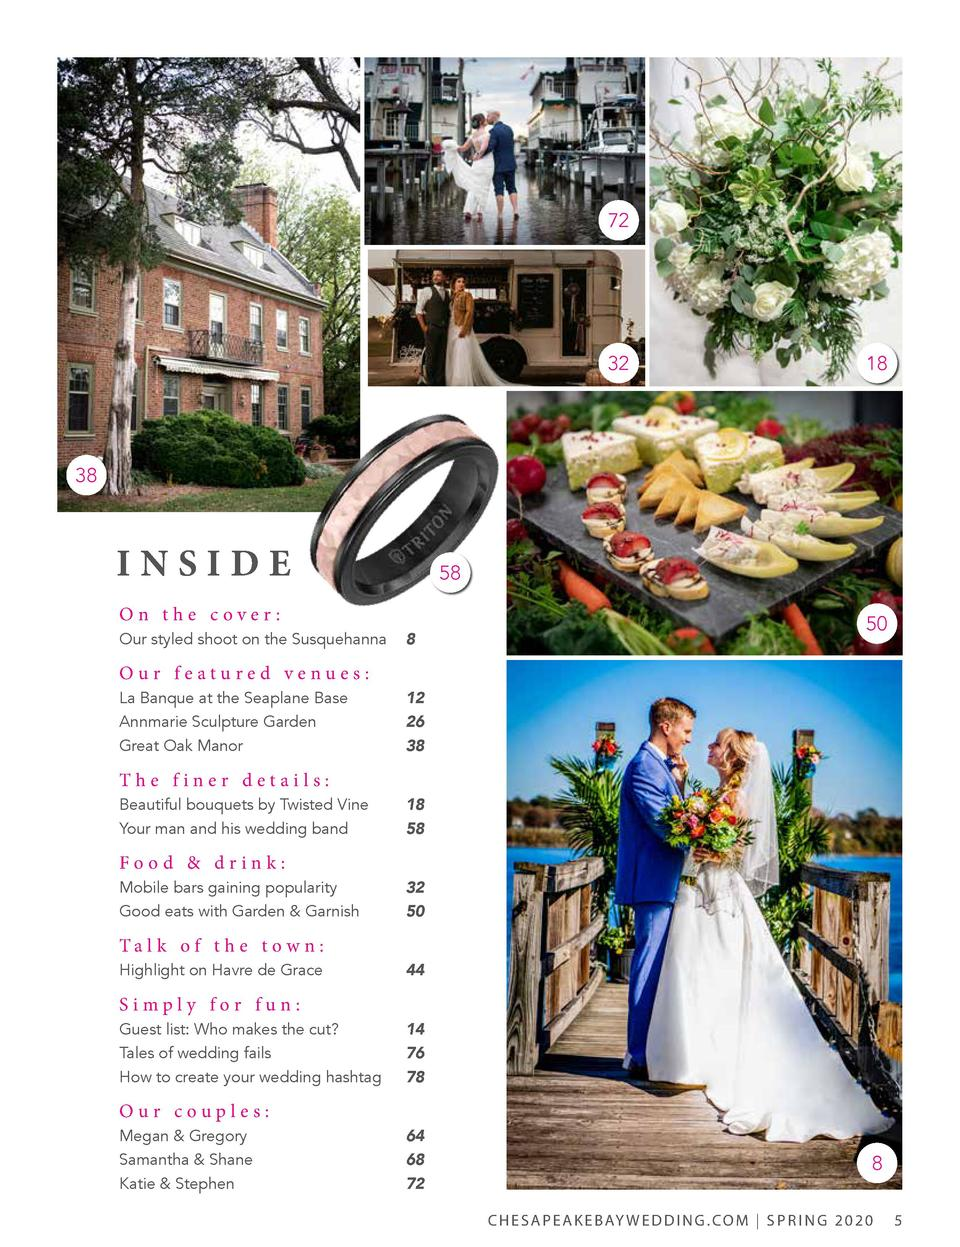 72  32  18  38  INSIDE  58  On the cover   50  Our styled shoot on the Susquehanna  8  Our featured venues  La Banque at t...